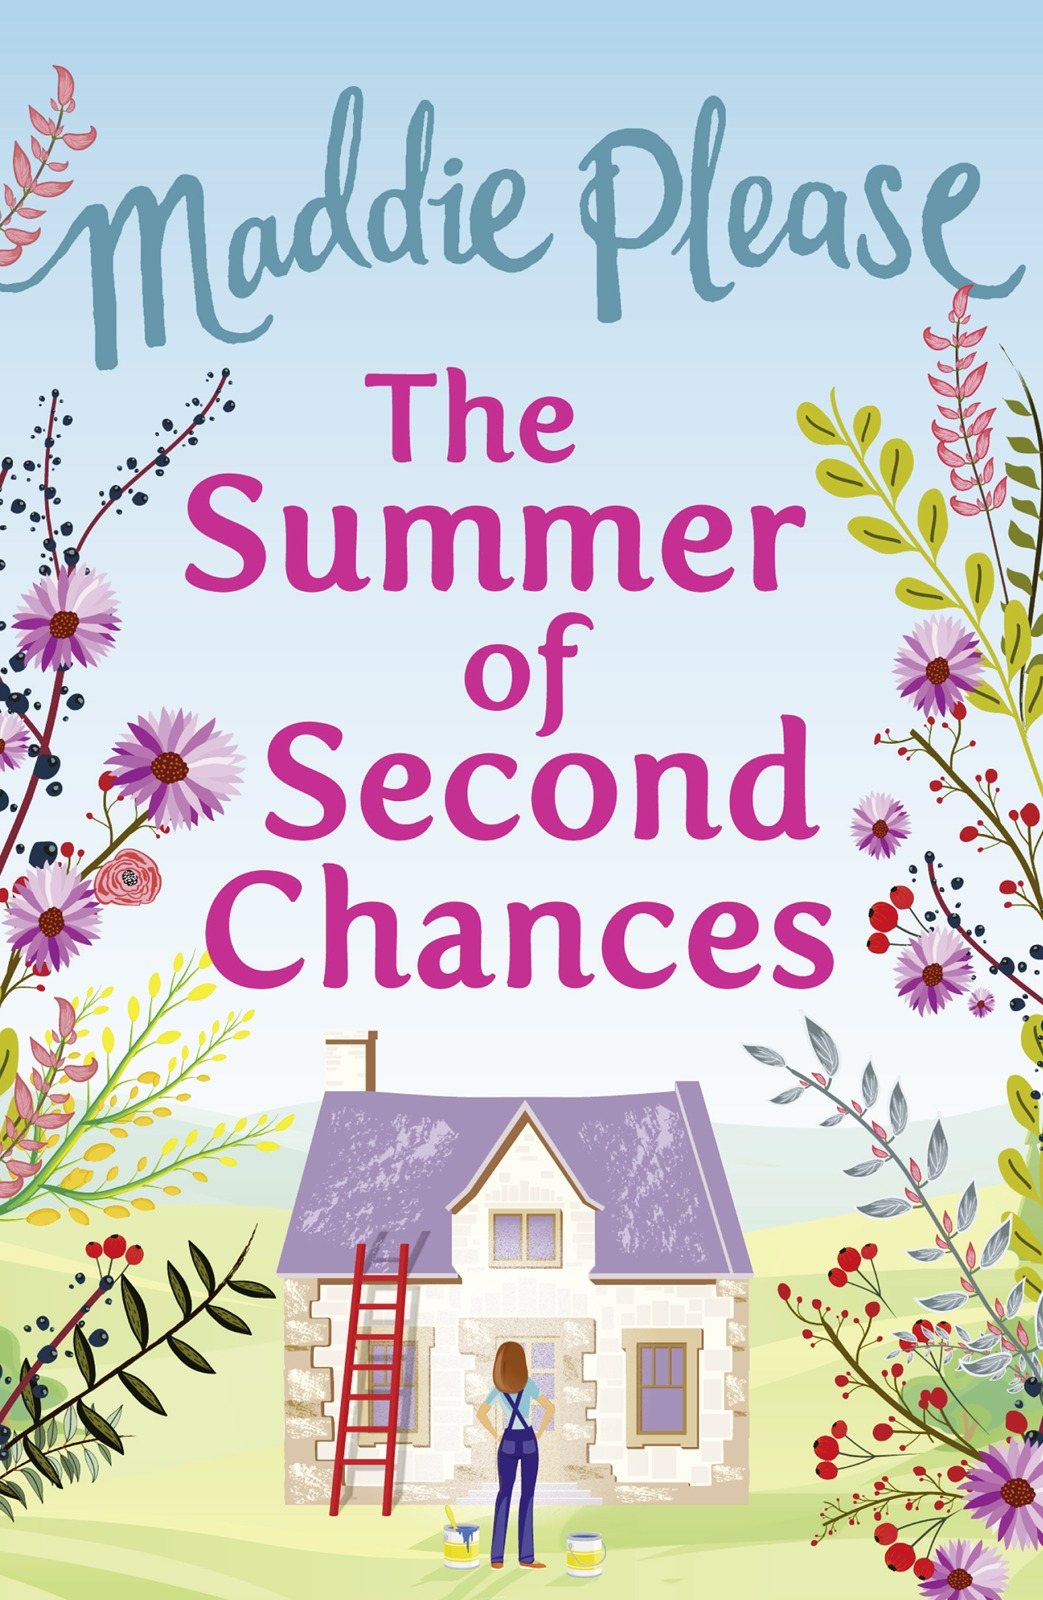 Maddie Please The Summer of Second Chances: The laugh-out-loud romantic comedy jaimie admans the chateau of happily ever afters a laugh out loud romcom